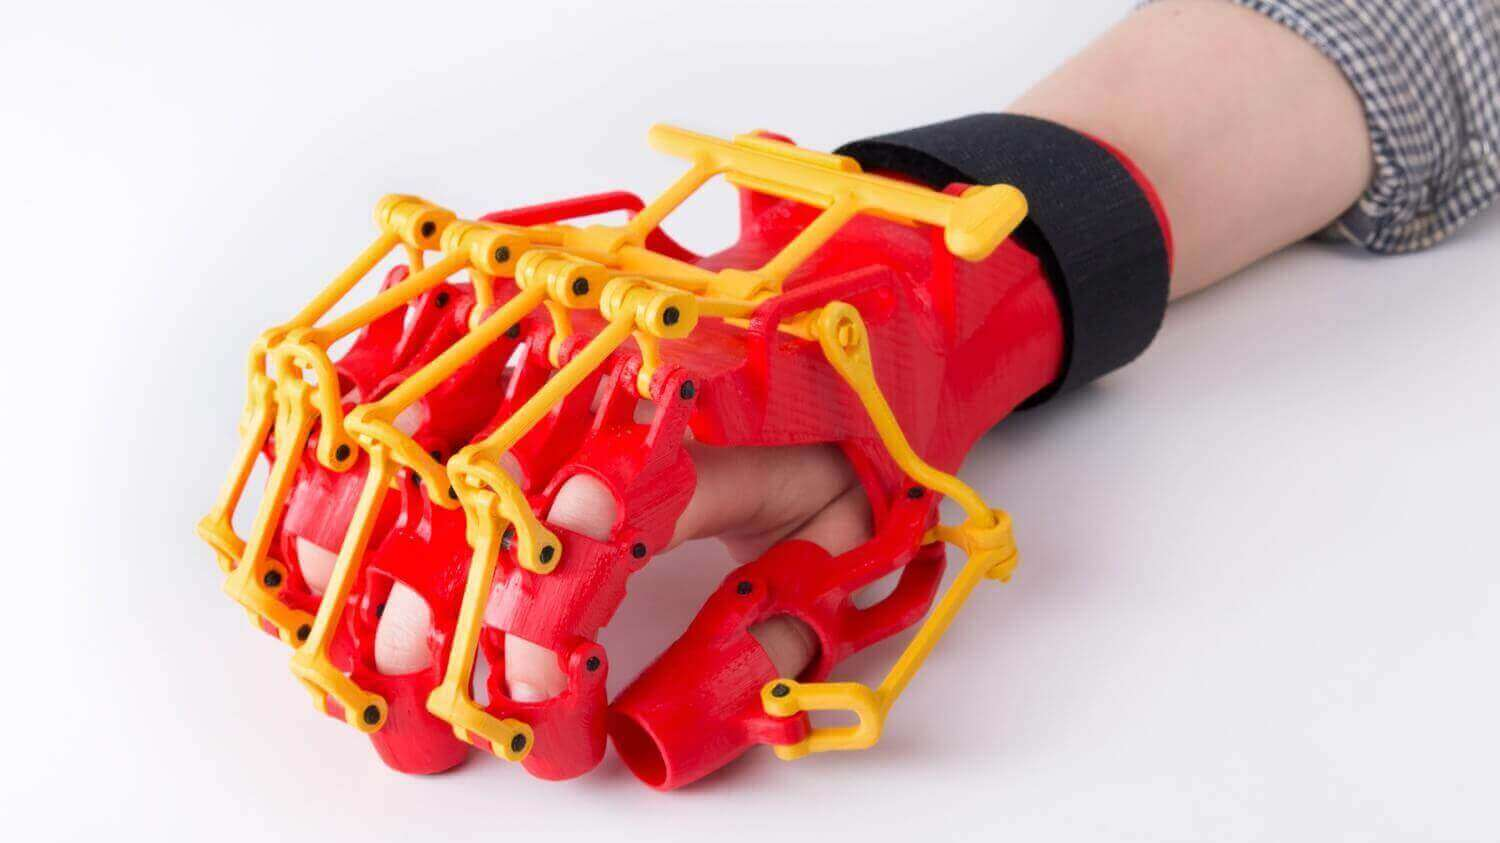 3D Printed Rehabilitation Orthosis by ZMorph | All3DP